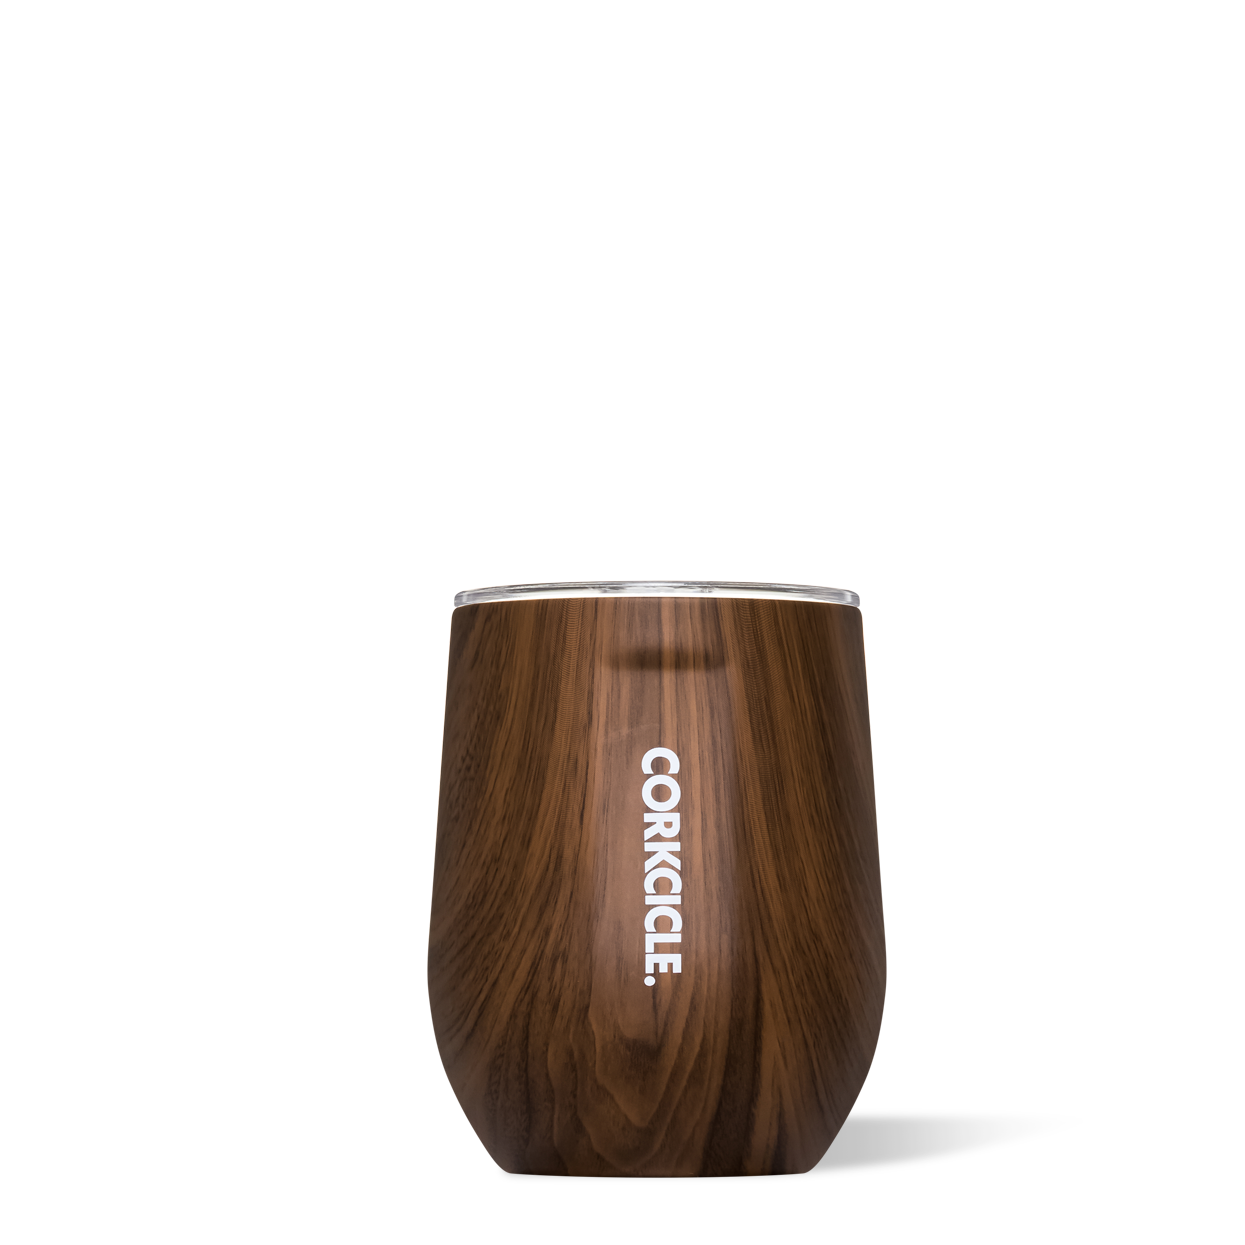 corkcicle | stemless - walnut wood[product_type ]corkcicle - Kiss and Makeup